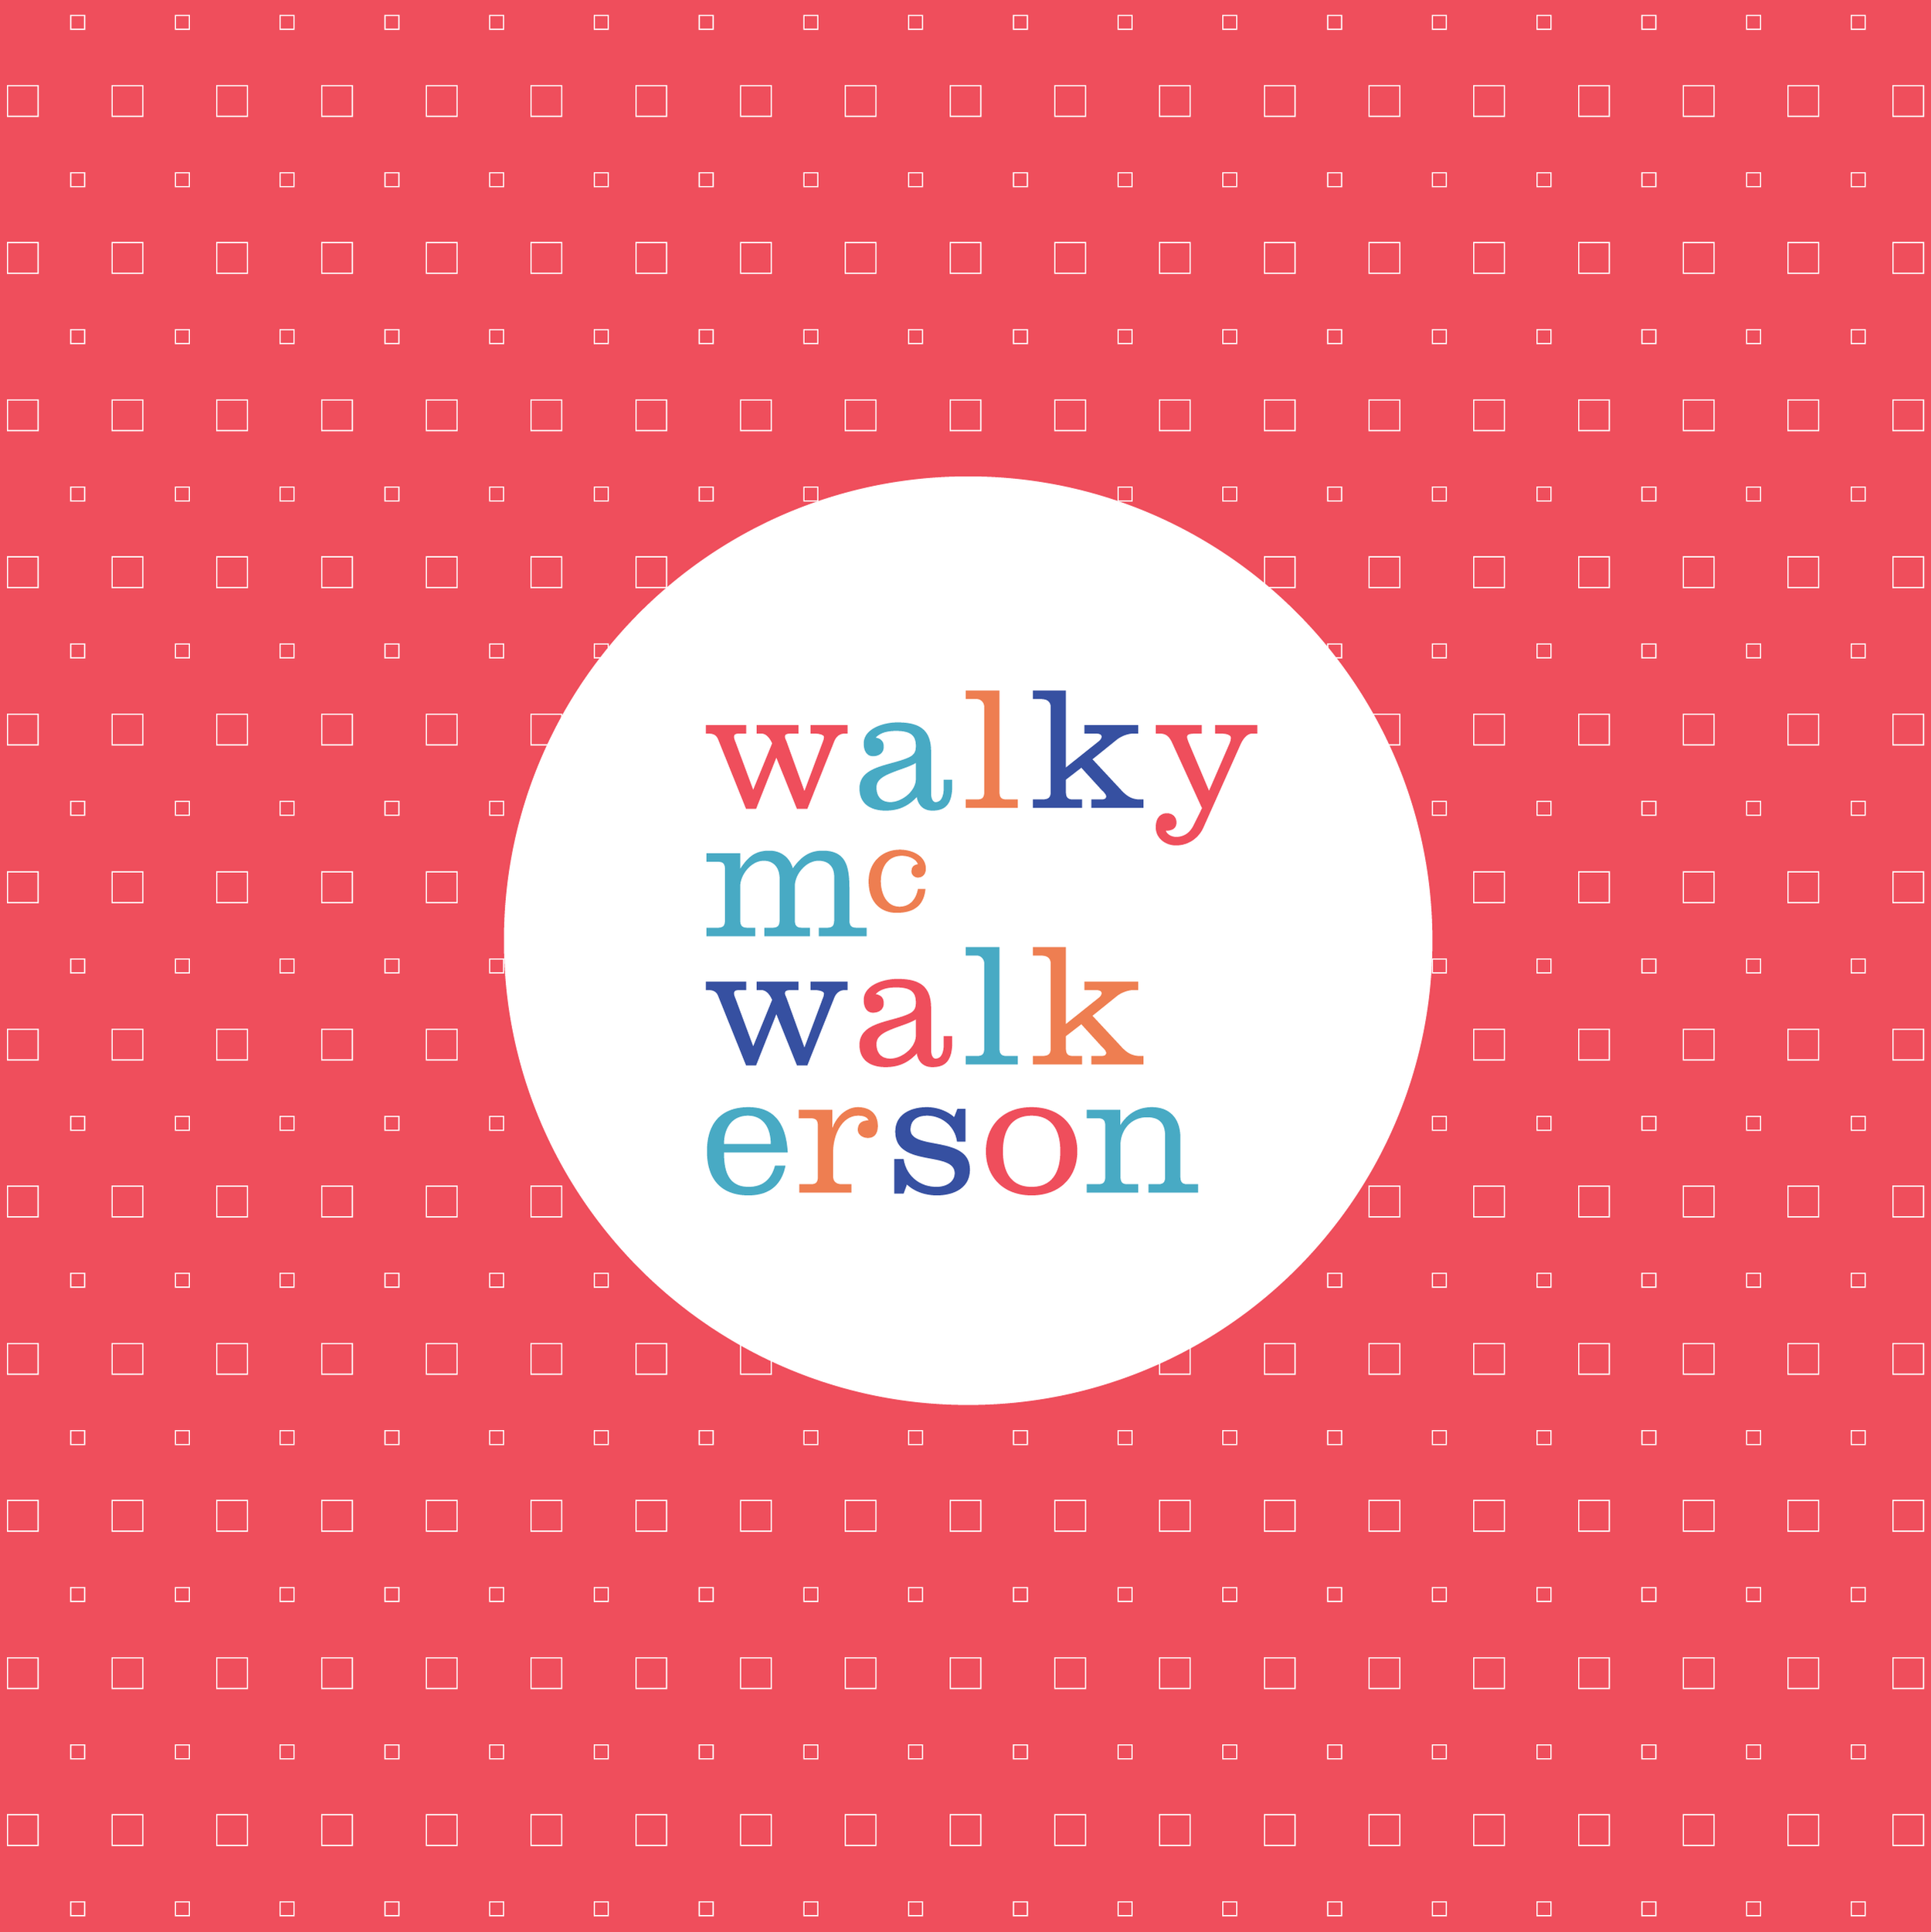 walky_mcwalkerson_logo_curiousandco-03.png